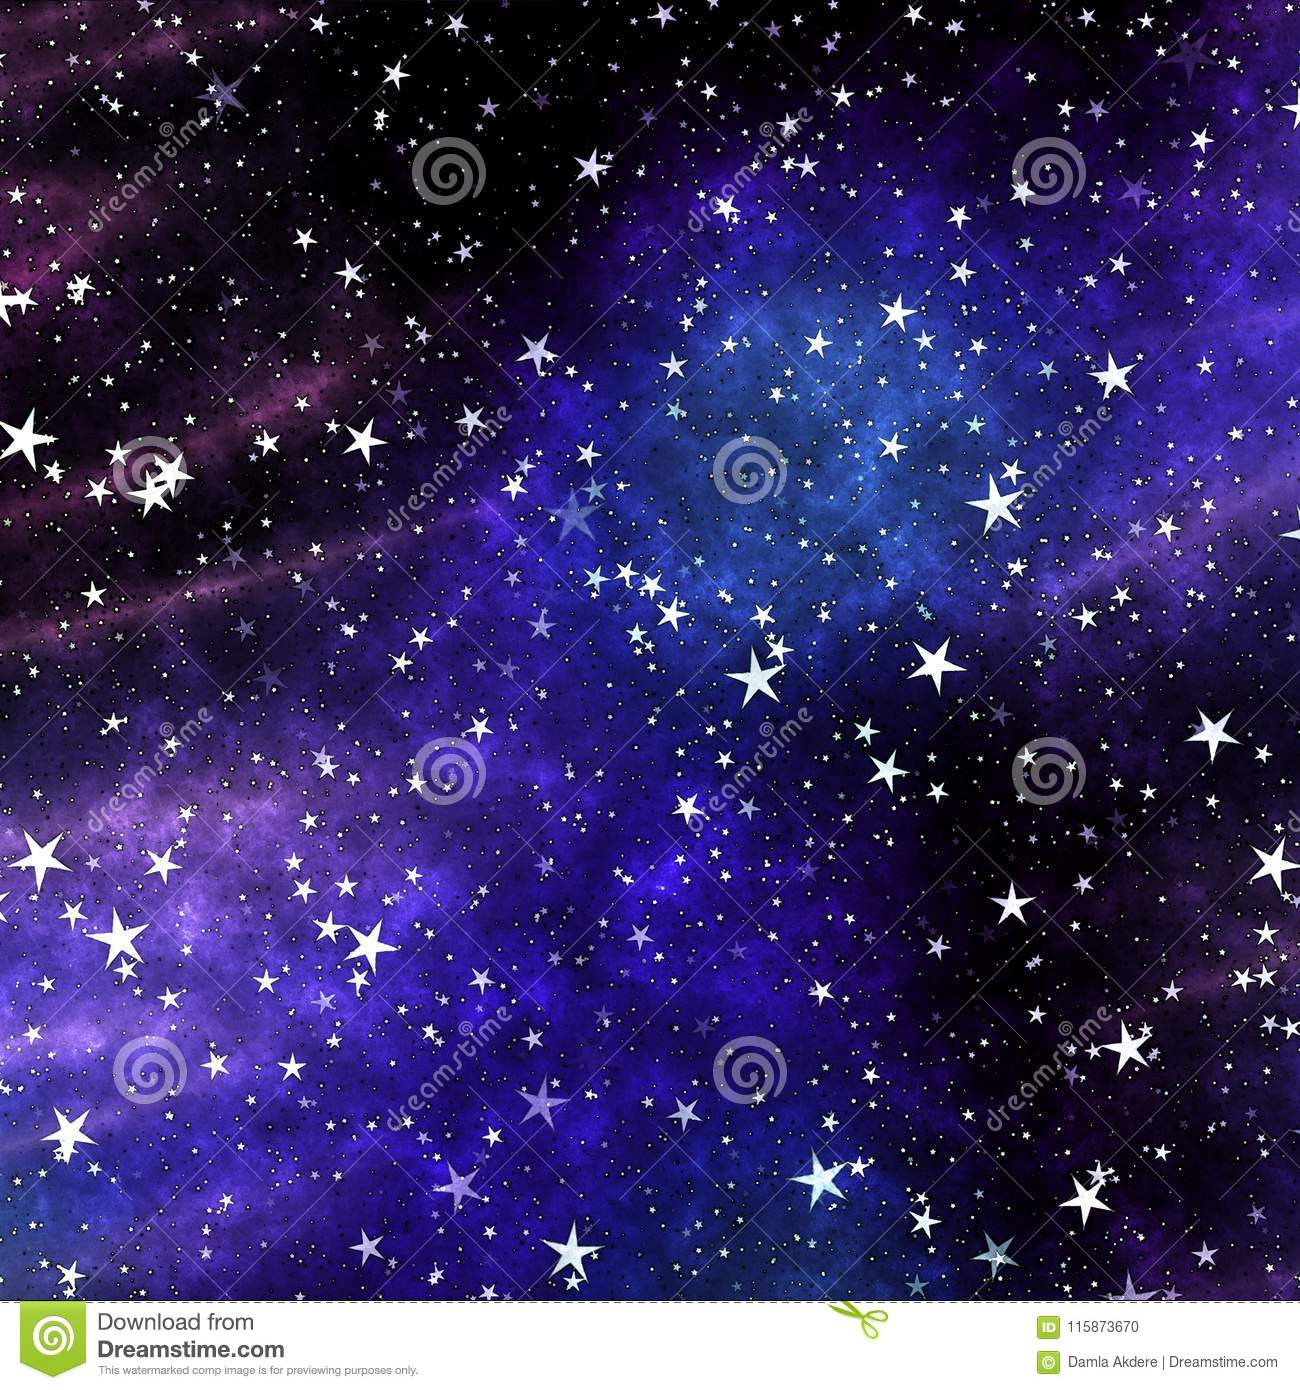 space galaxy background space texture galaxy abstract starry night wallpaper space wallpaper wallpaper printing packaging 115873670